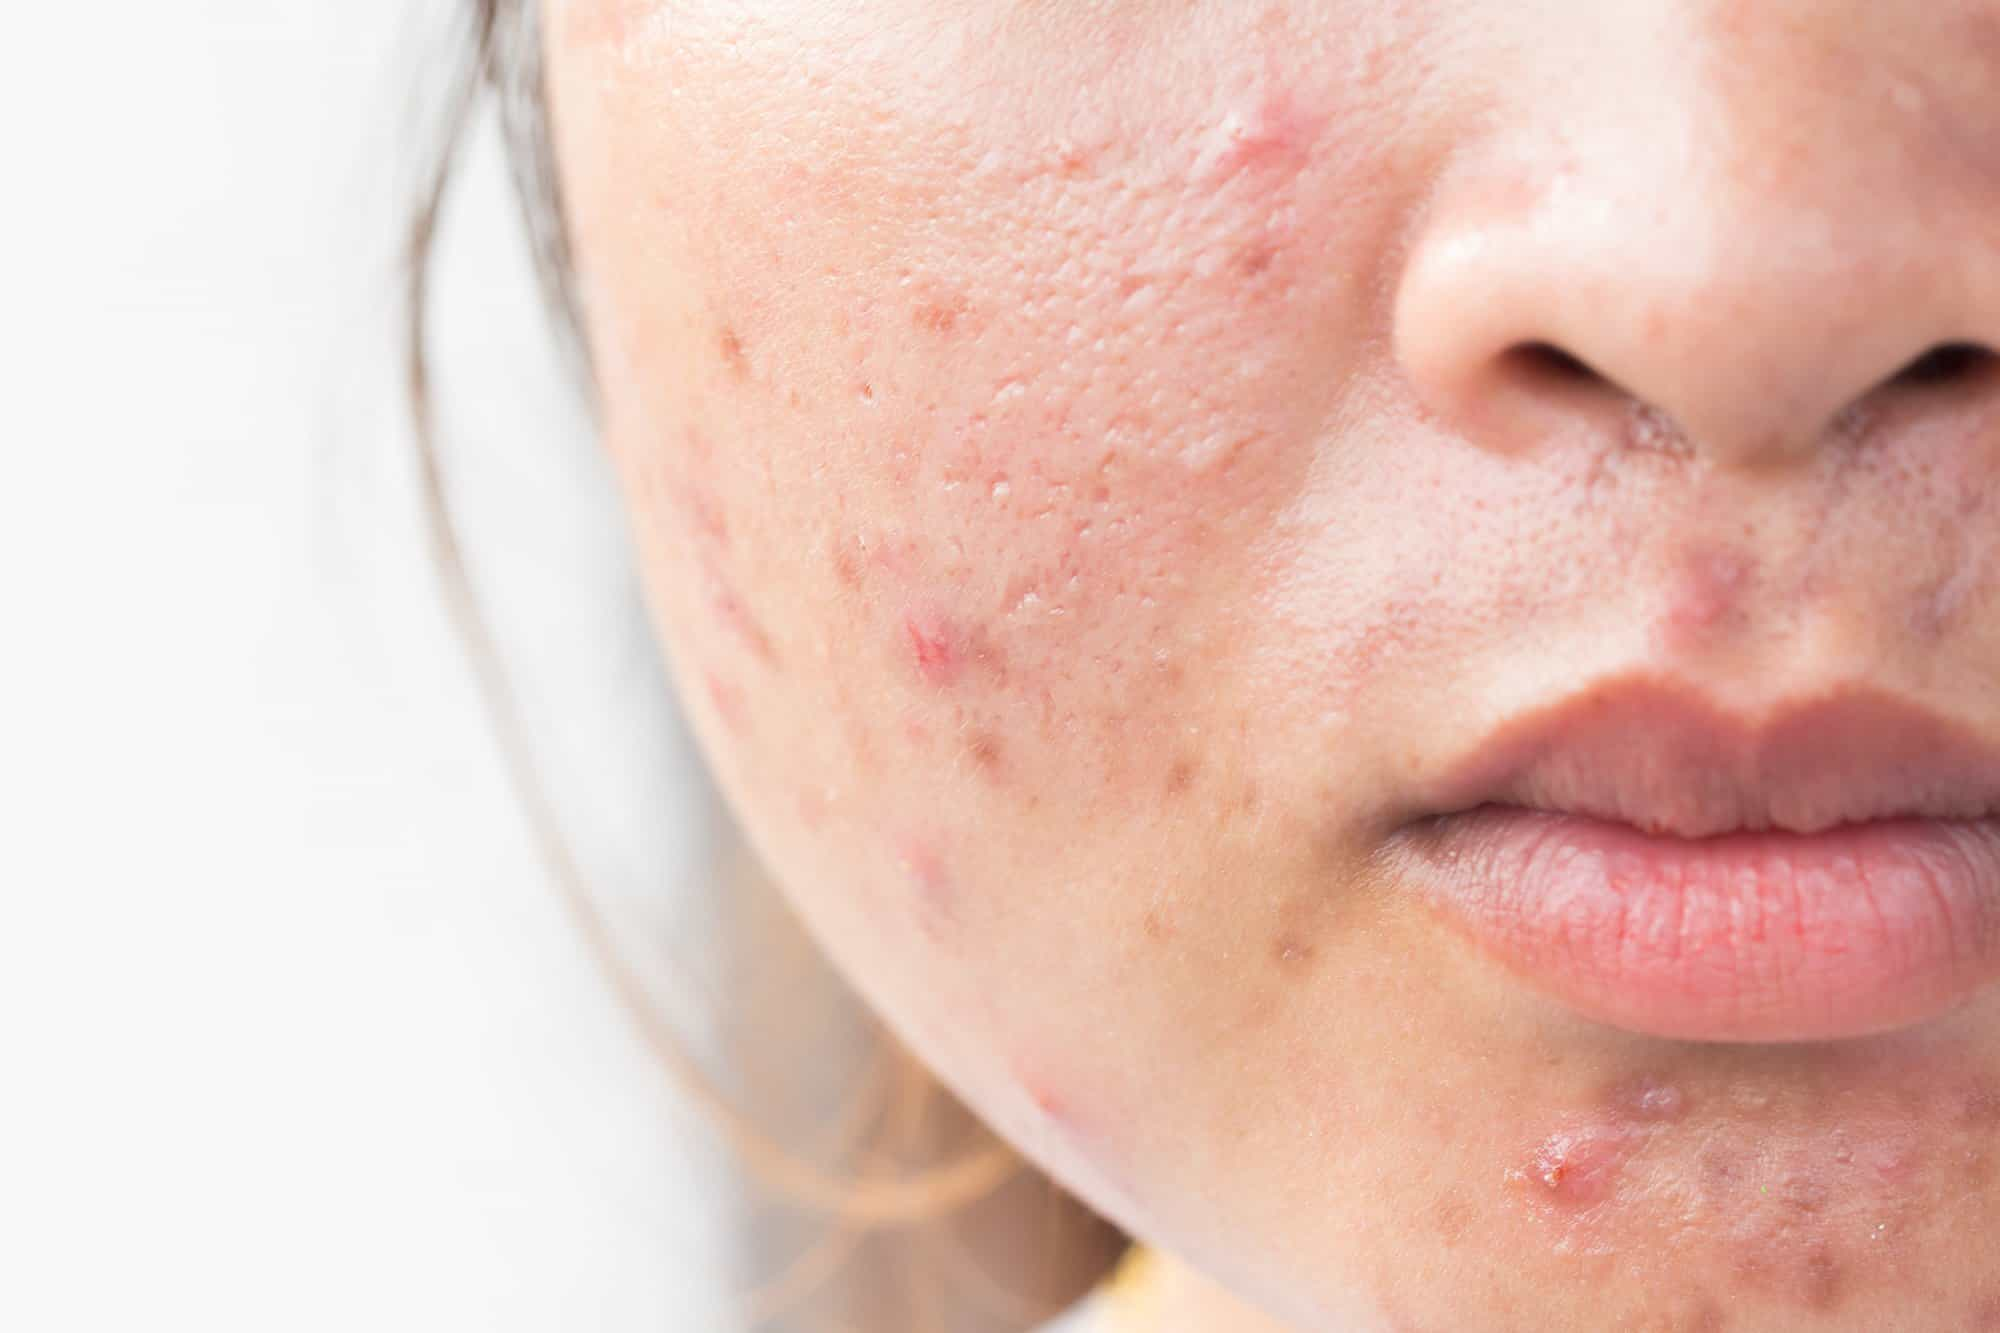 How To Get Rid Of Acne (Pimples) Fast